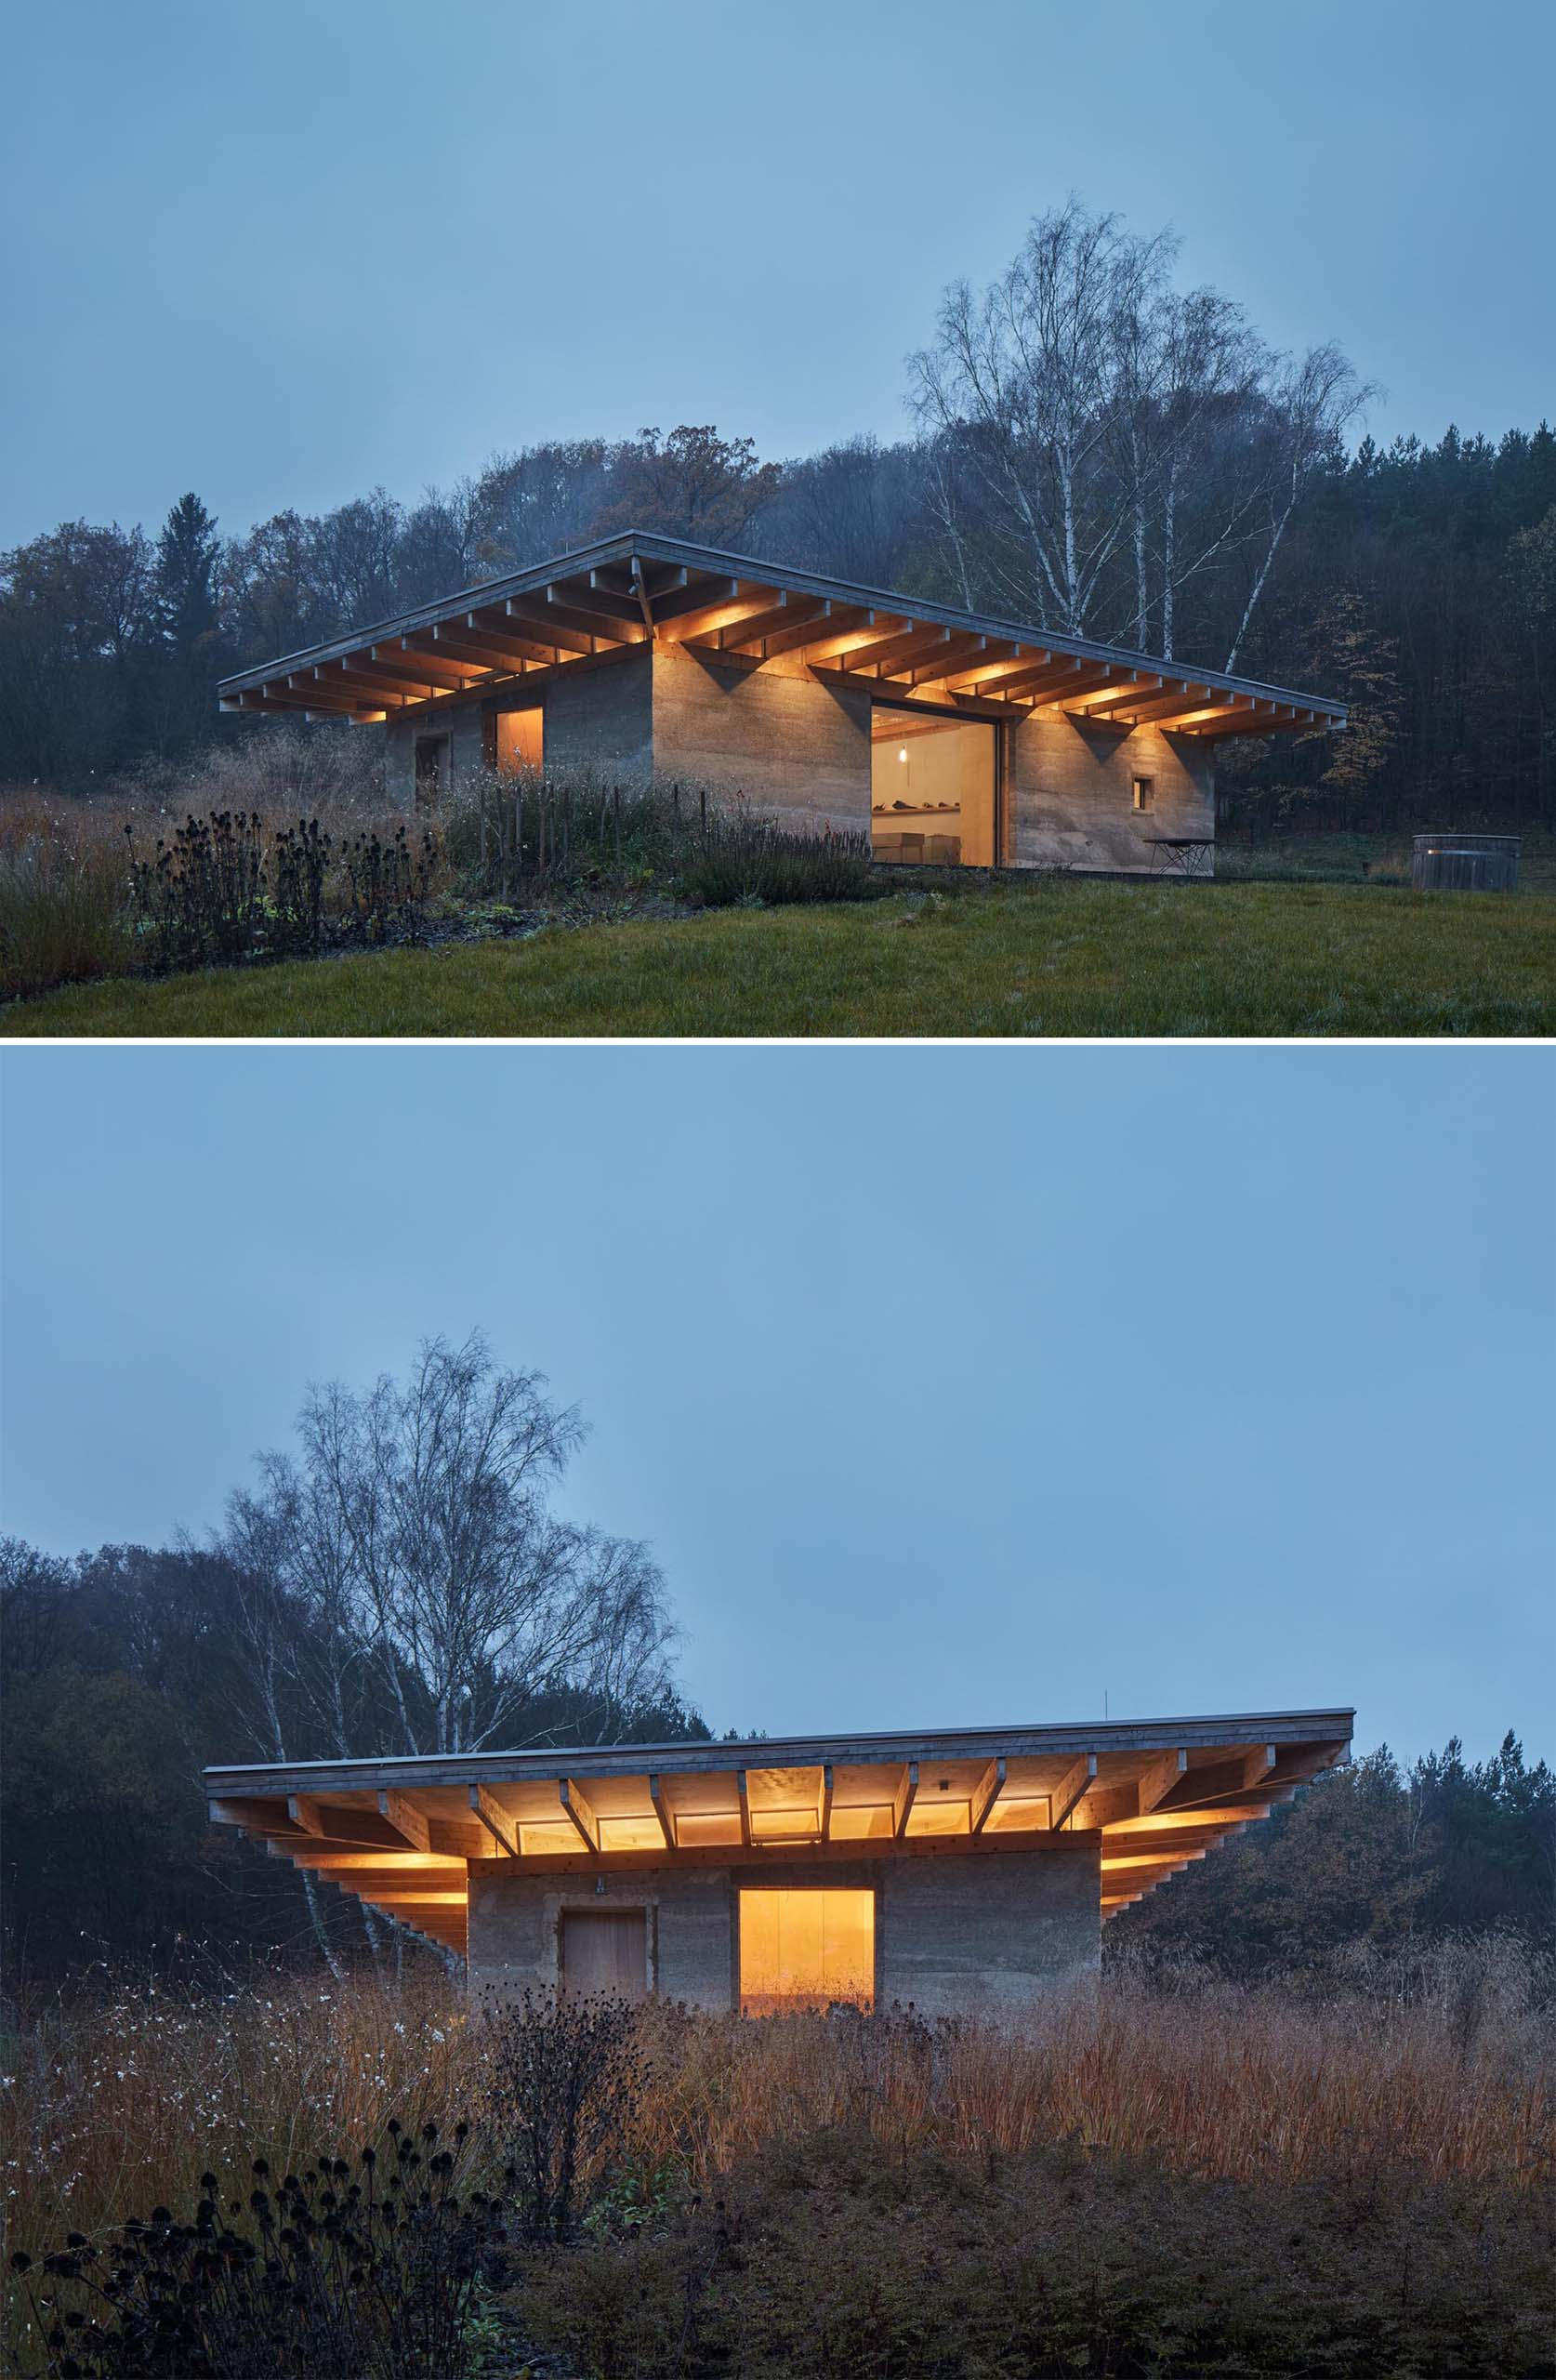 A modern cabin with a green roof and hempcrete walls is surrounded by nature.